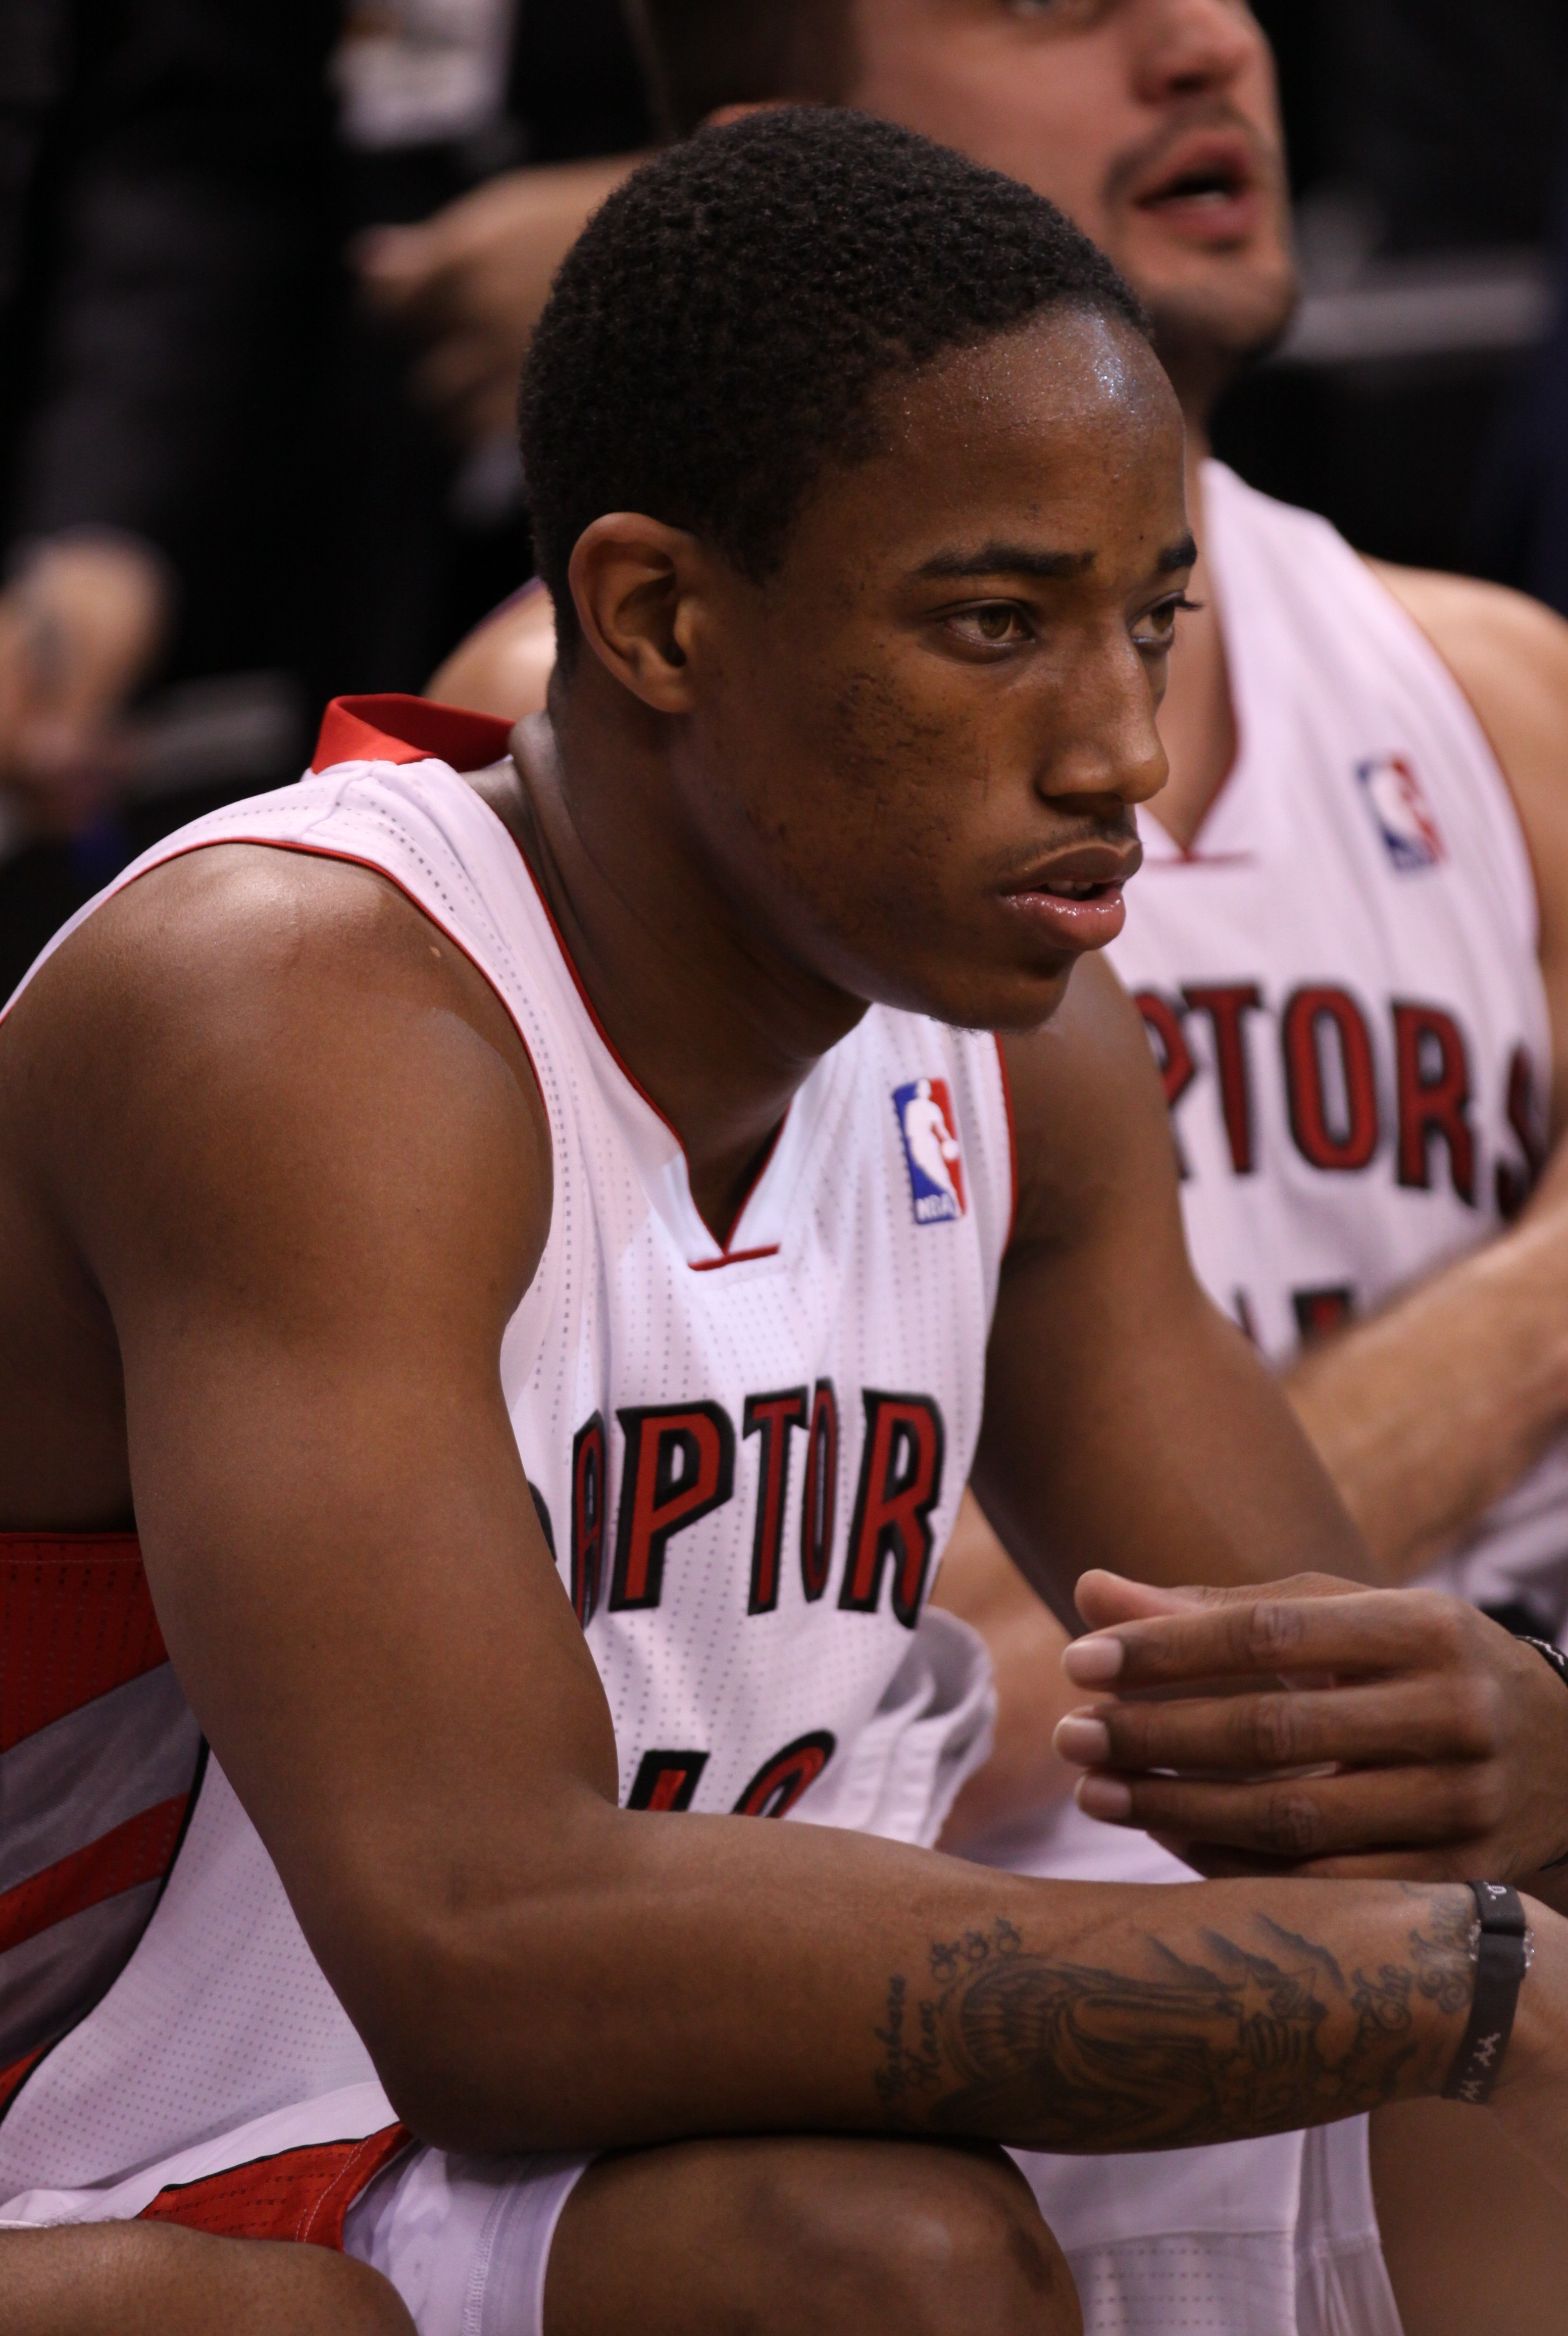 Toronto Raptors Guard DeMar DeRozan missed a game-tying attempt in the final seconds in a 94-92 loss to the Los Angeles Lakers on Sunday afternoon at the Air Canada Centre (JP Dhanoa)